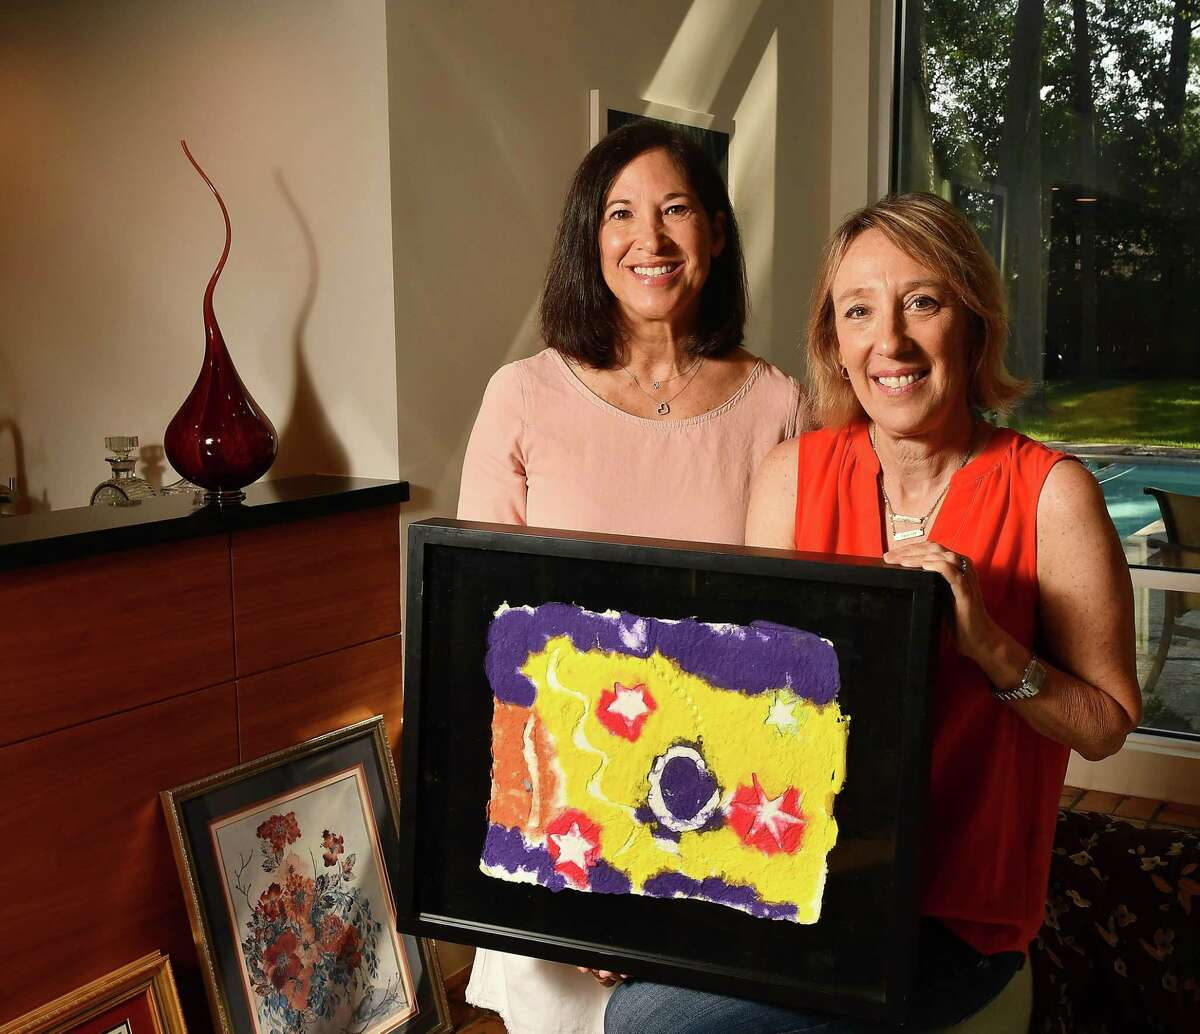 Art for All Homes founders Catherine Wile and Lisa Sheinbaum at Wile's home Thursday July 26,2021